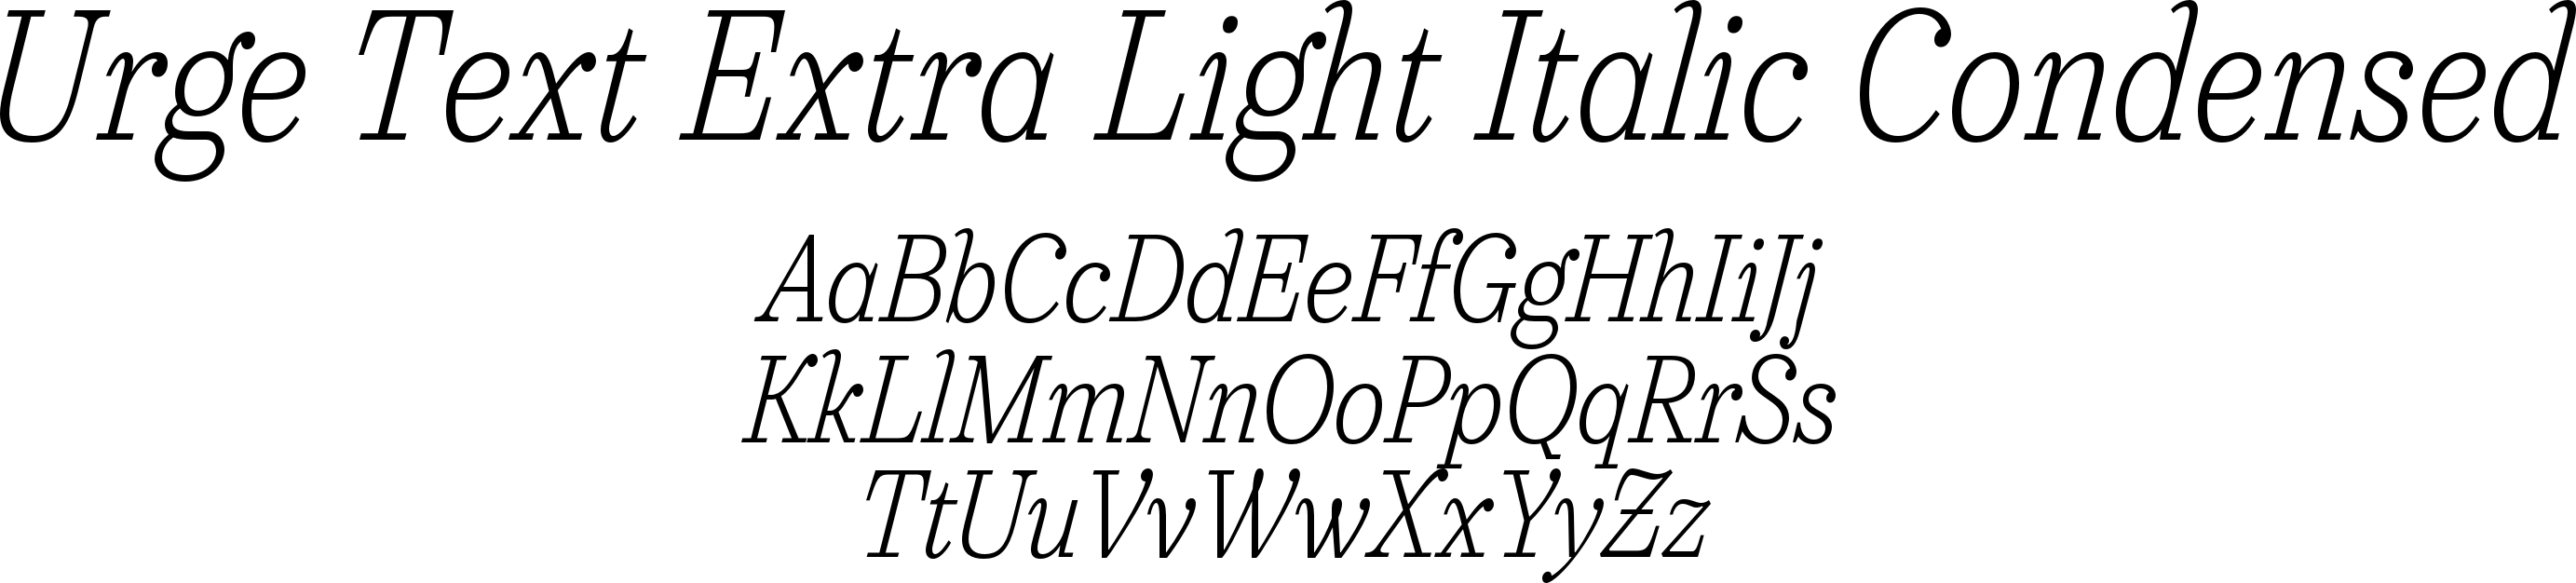 Urge Text Extra Light Italic Condensed